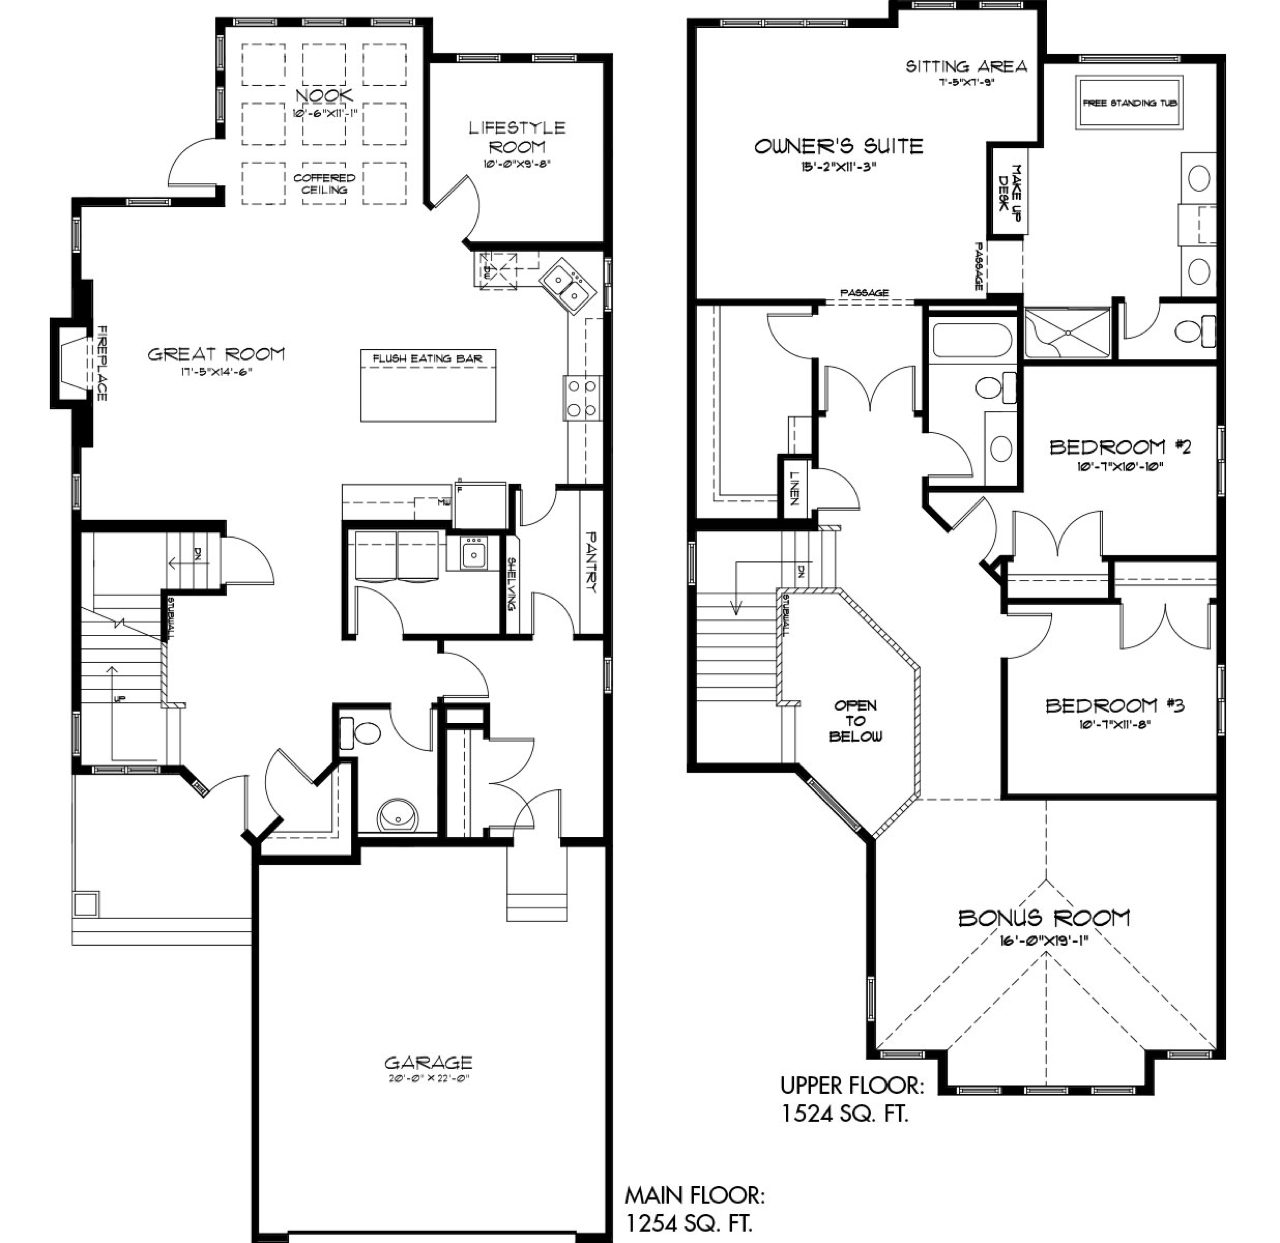 The Latest Quick Possession Homes From Pacesetter! Hillary Image